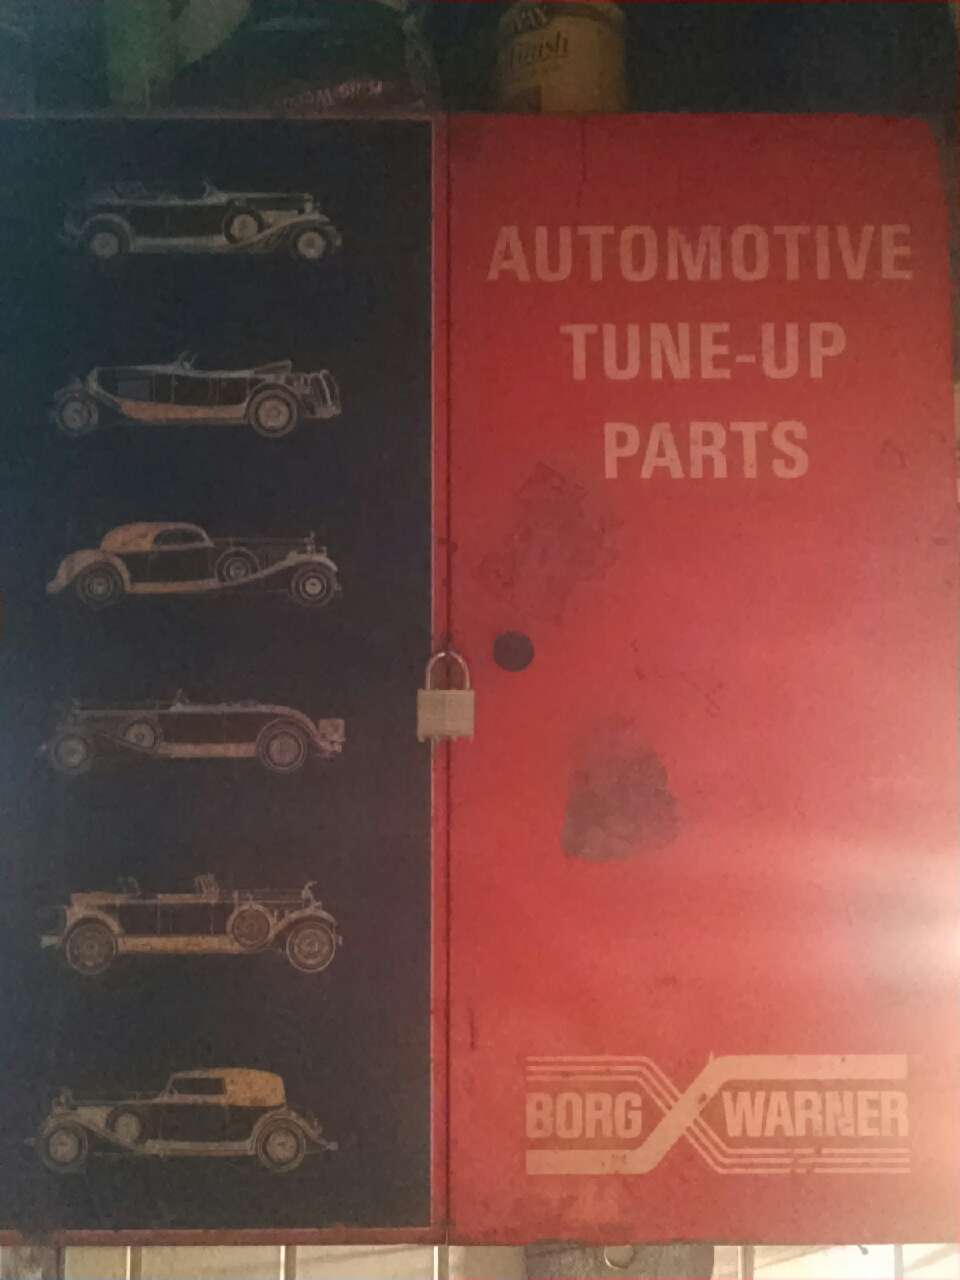 Car Tune Up Parts : Letgo red automotive tune up parts bo in doctortown ga